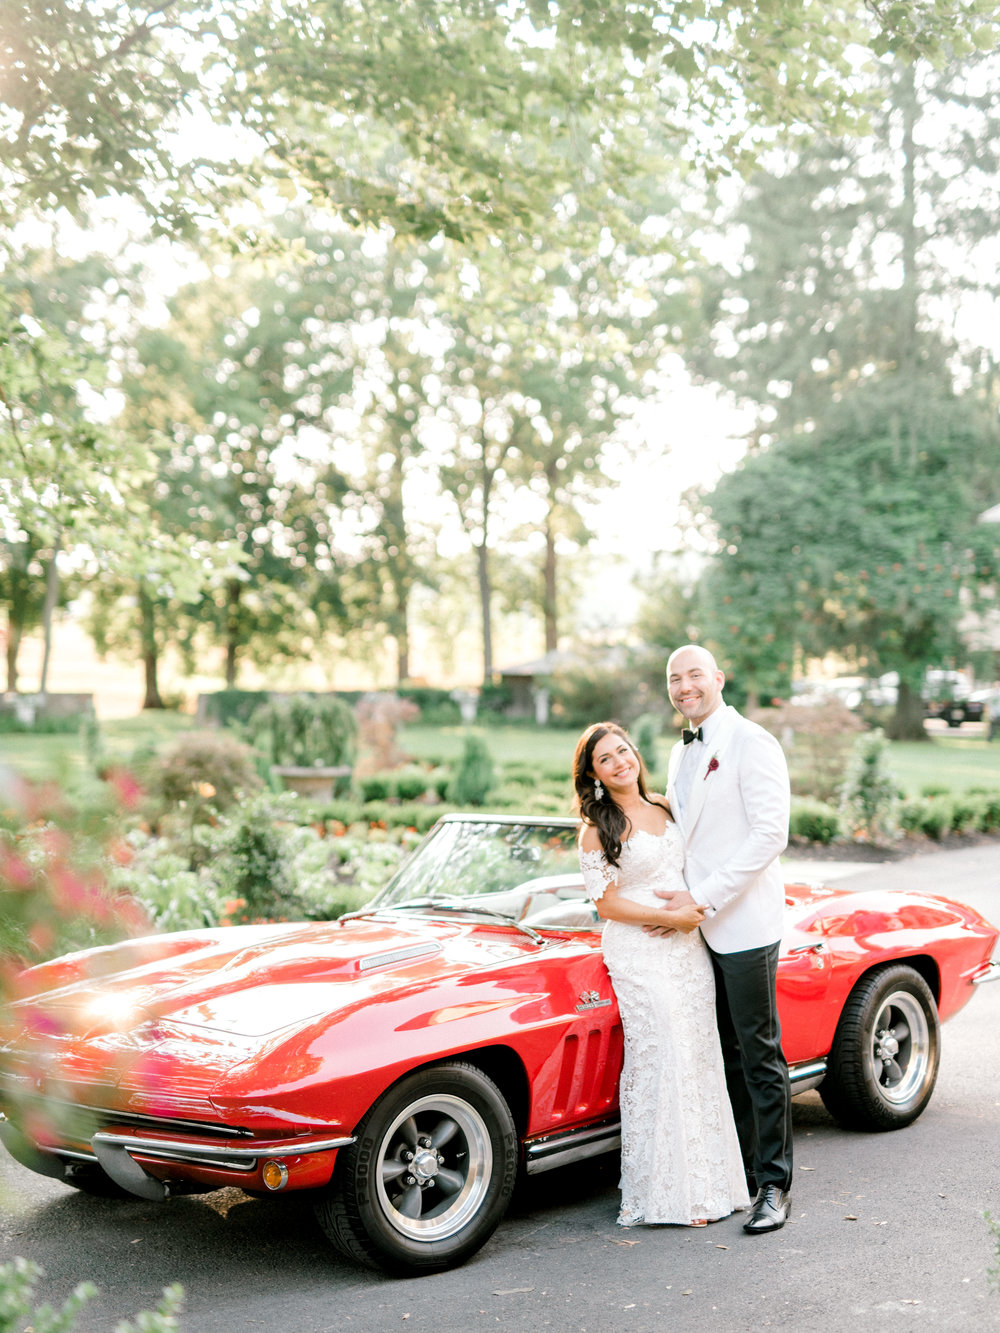 We loved the bright and modern look of whites mixed with bold pops of color for Lindsey and James's summer wedding at Hotel du Village. This red classic car made for the perfect red accent.